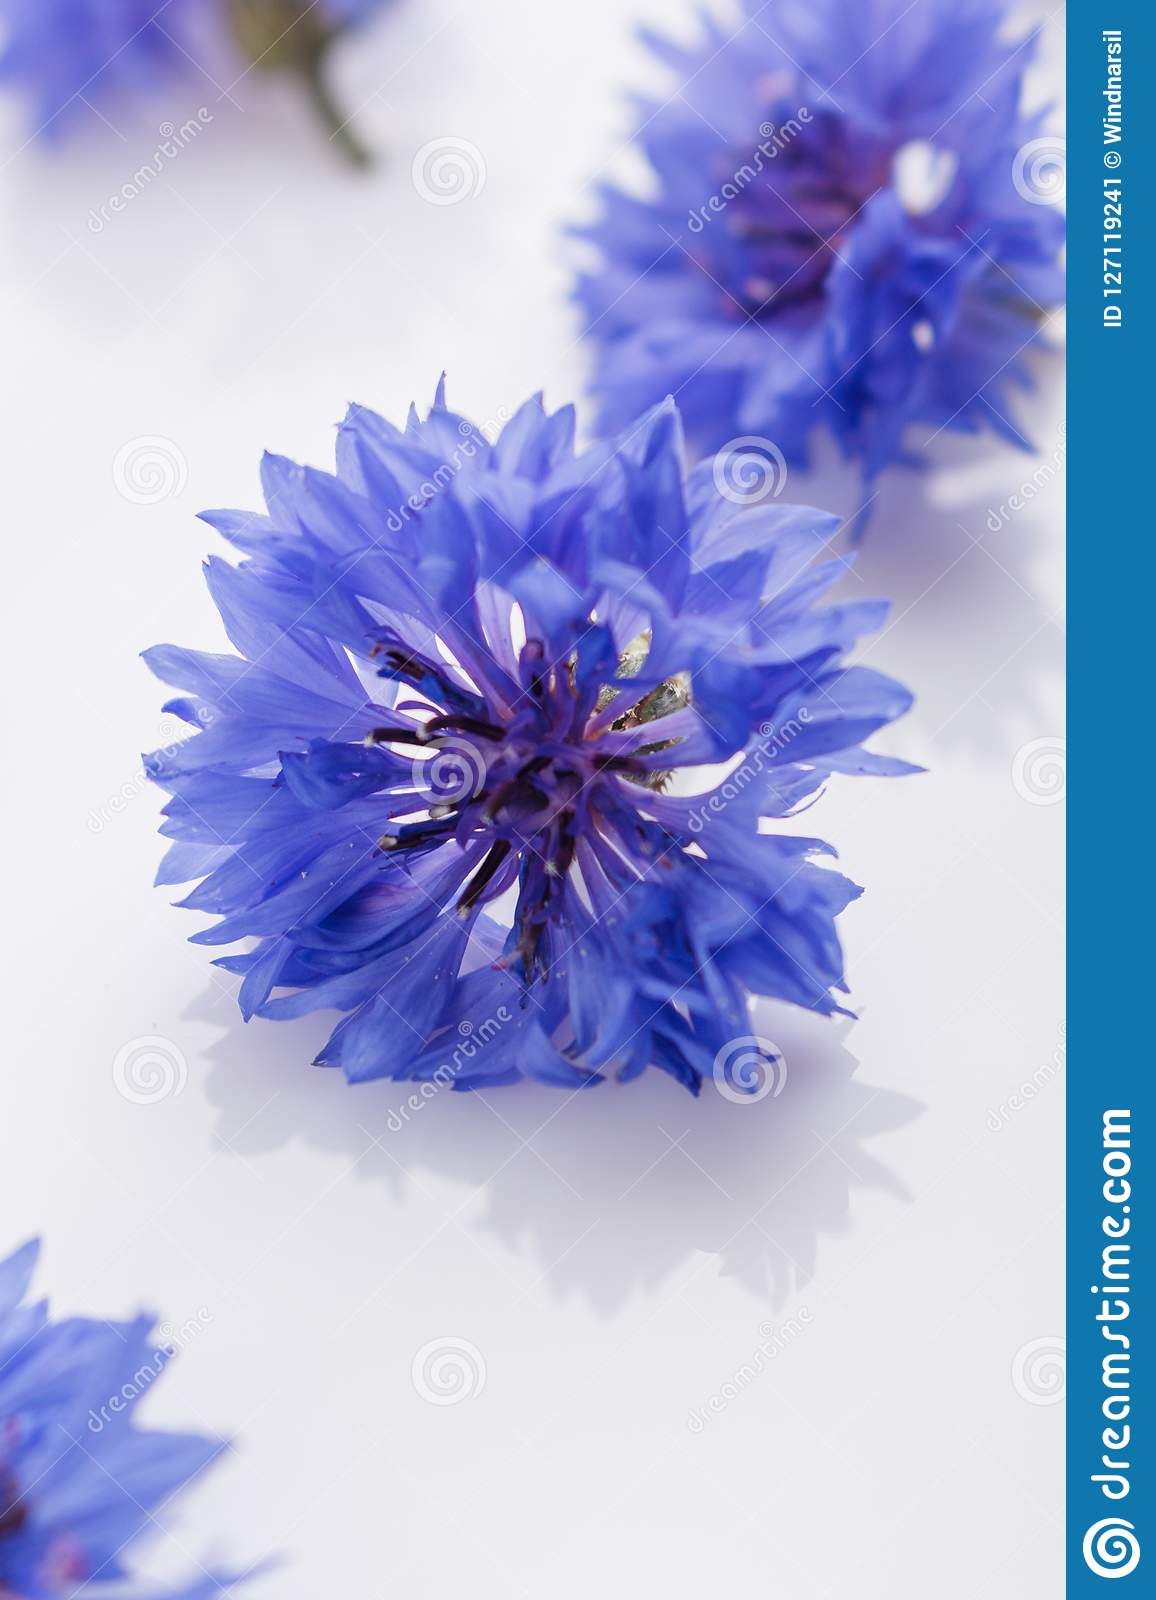 Essential oil of cornflower on a white background